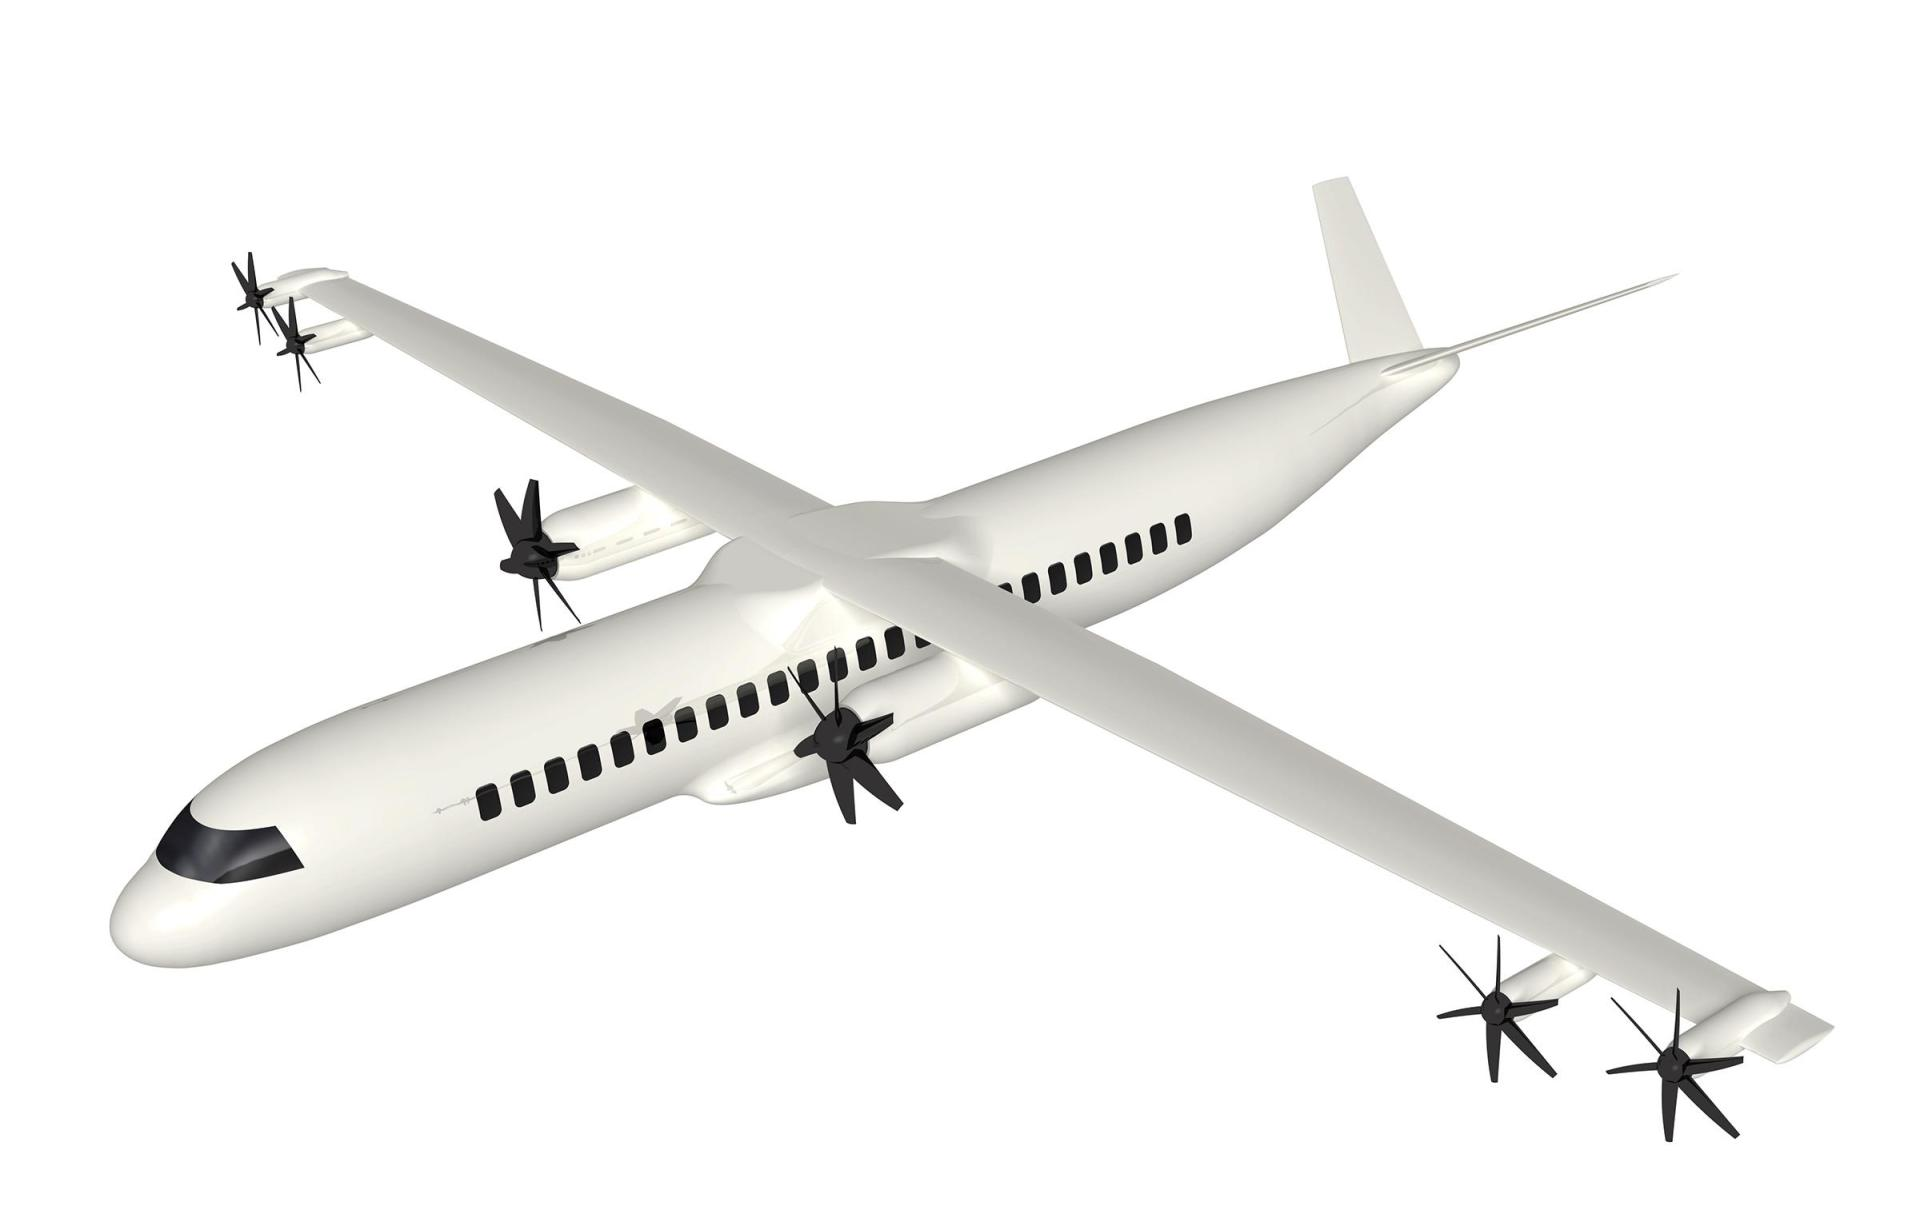 Regional aircraft with additional e-propellers near the wingtips